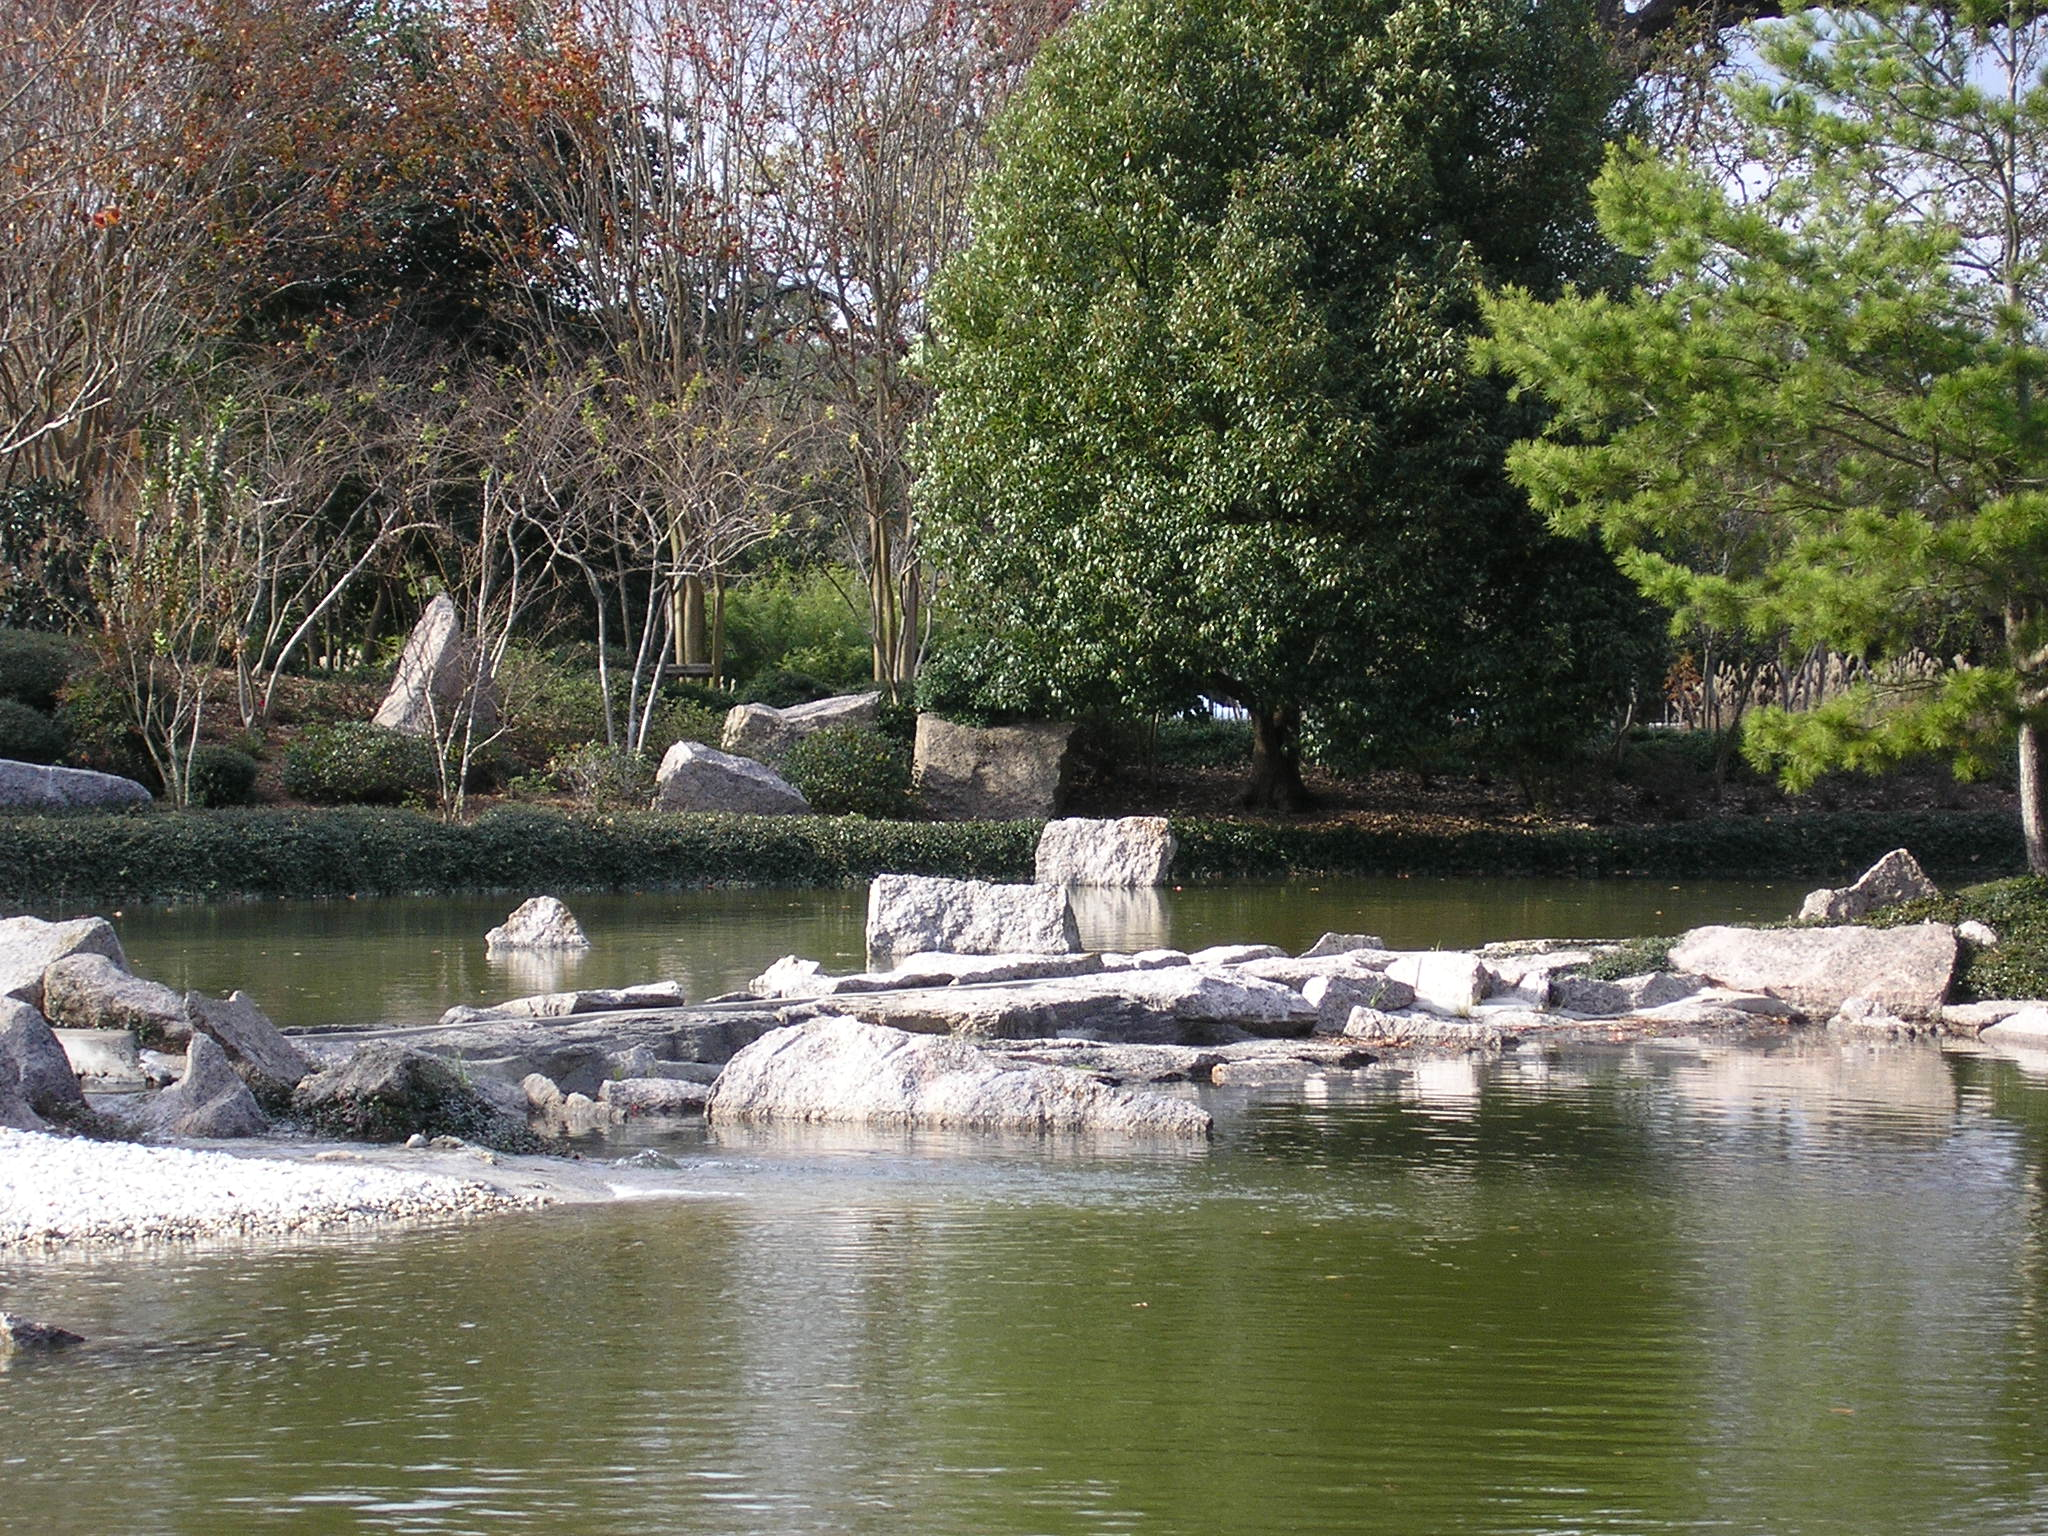 Merveilleux File:Japanese Garden, Houston, Texas (2003)   02.JPG